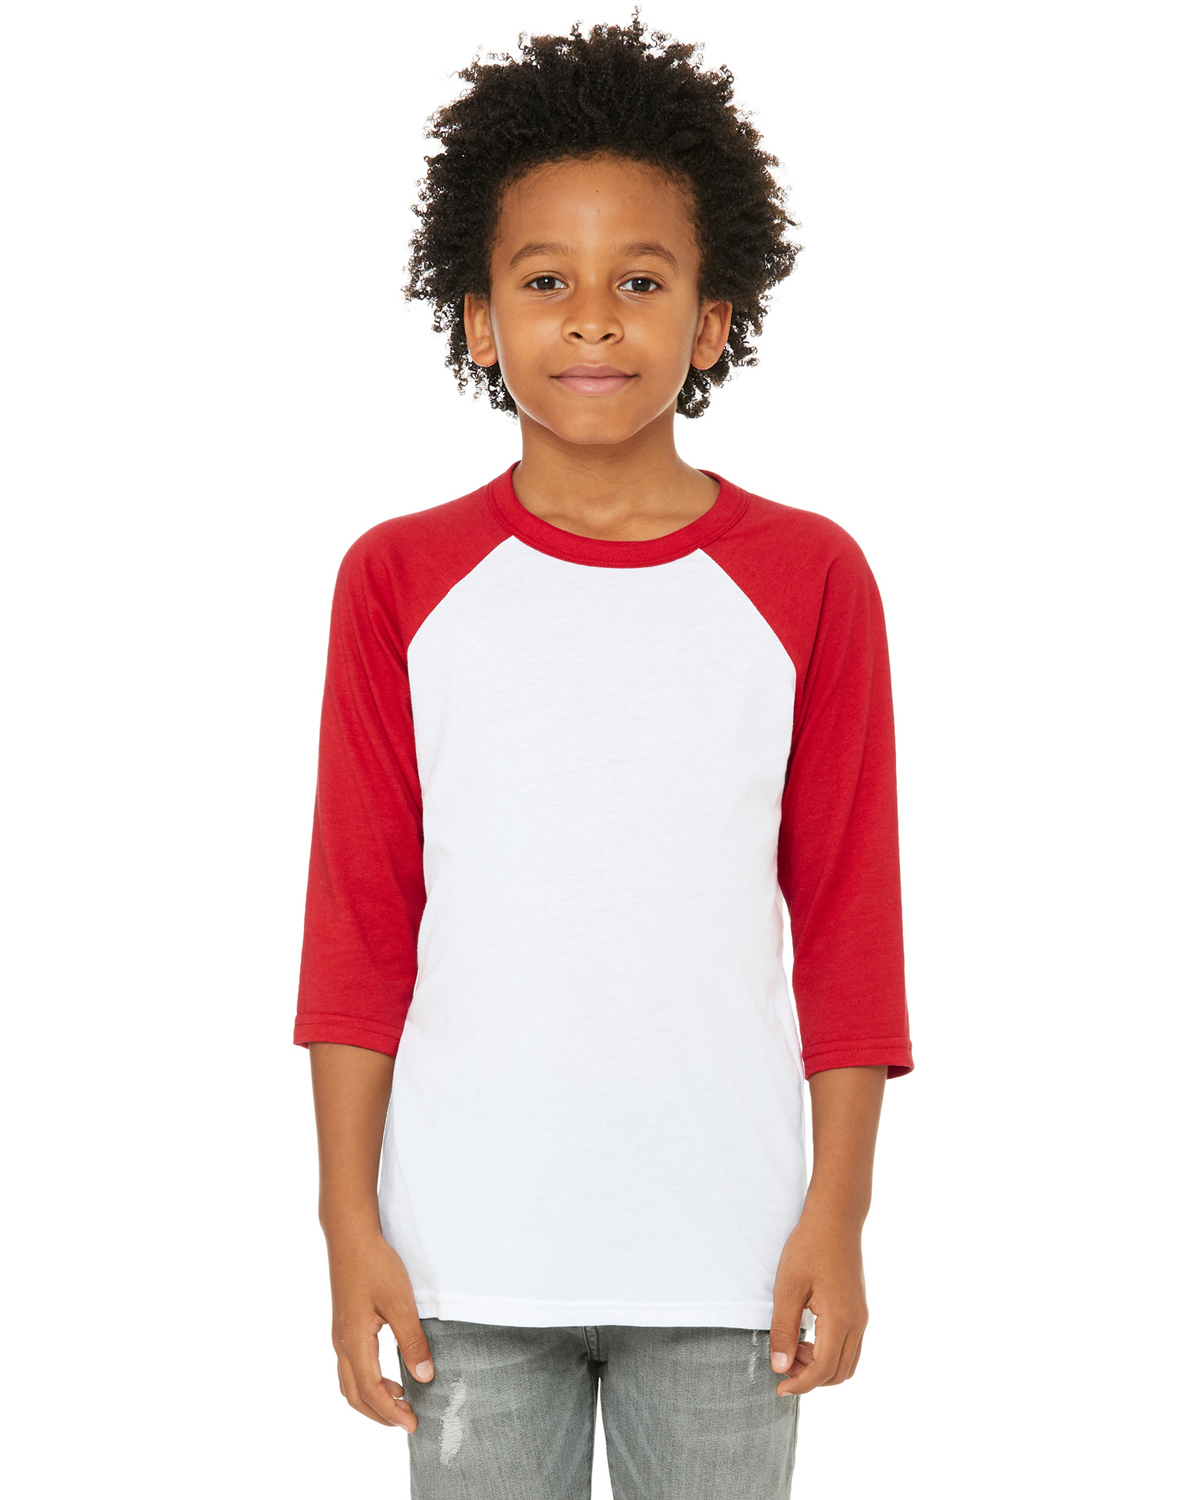 White/ Red Youth 3/4-Sleeve Baseball T-Shirt